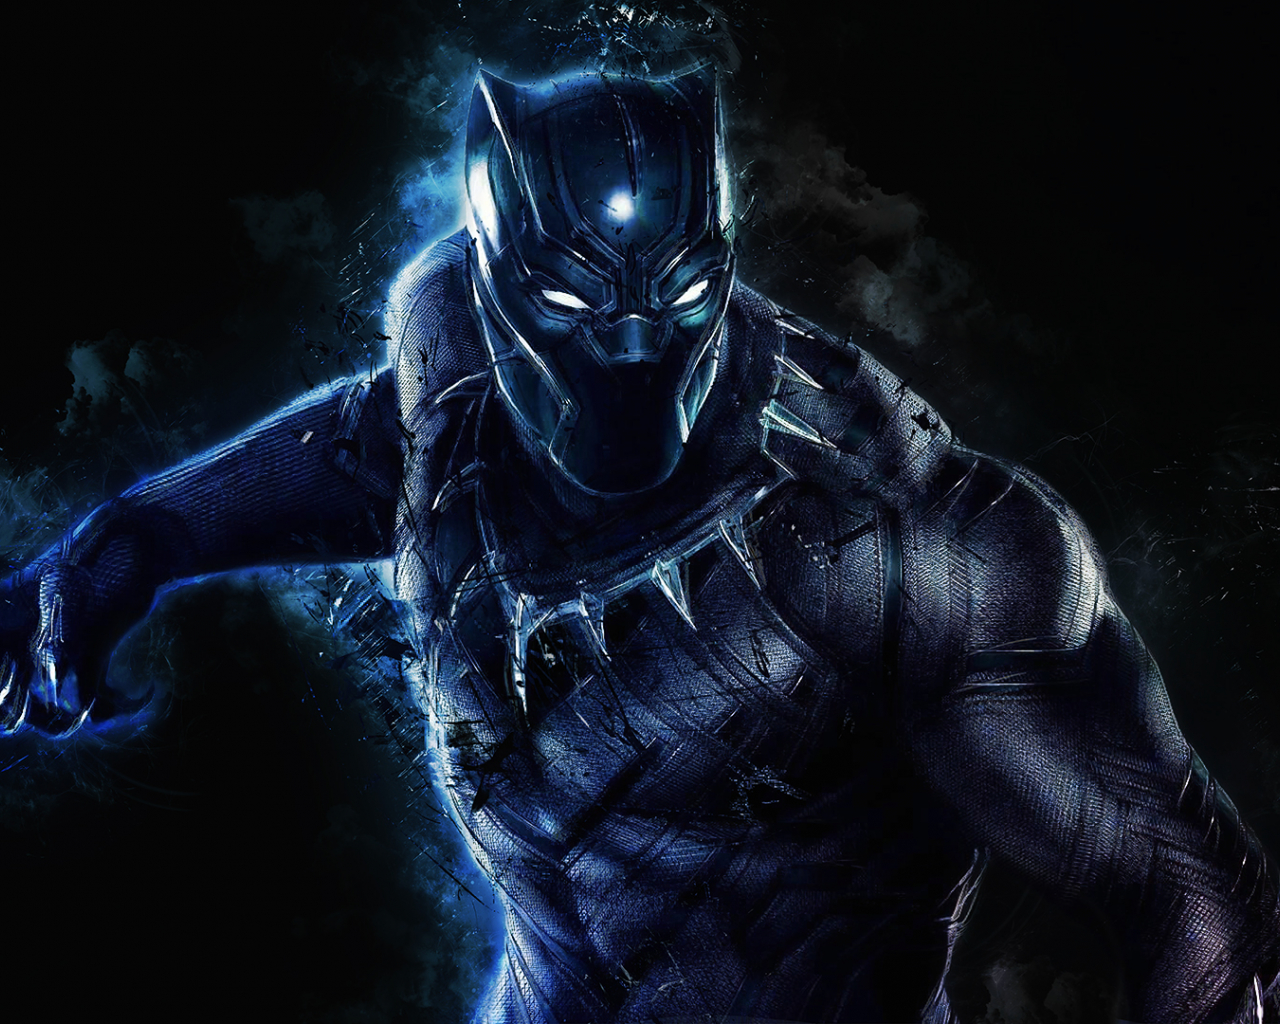 Free Download Black Panther Chromebook Wallpaper For Download